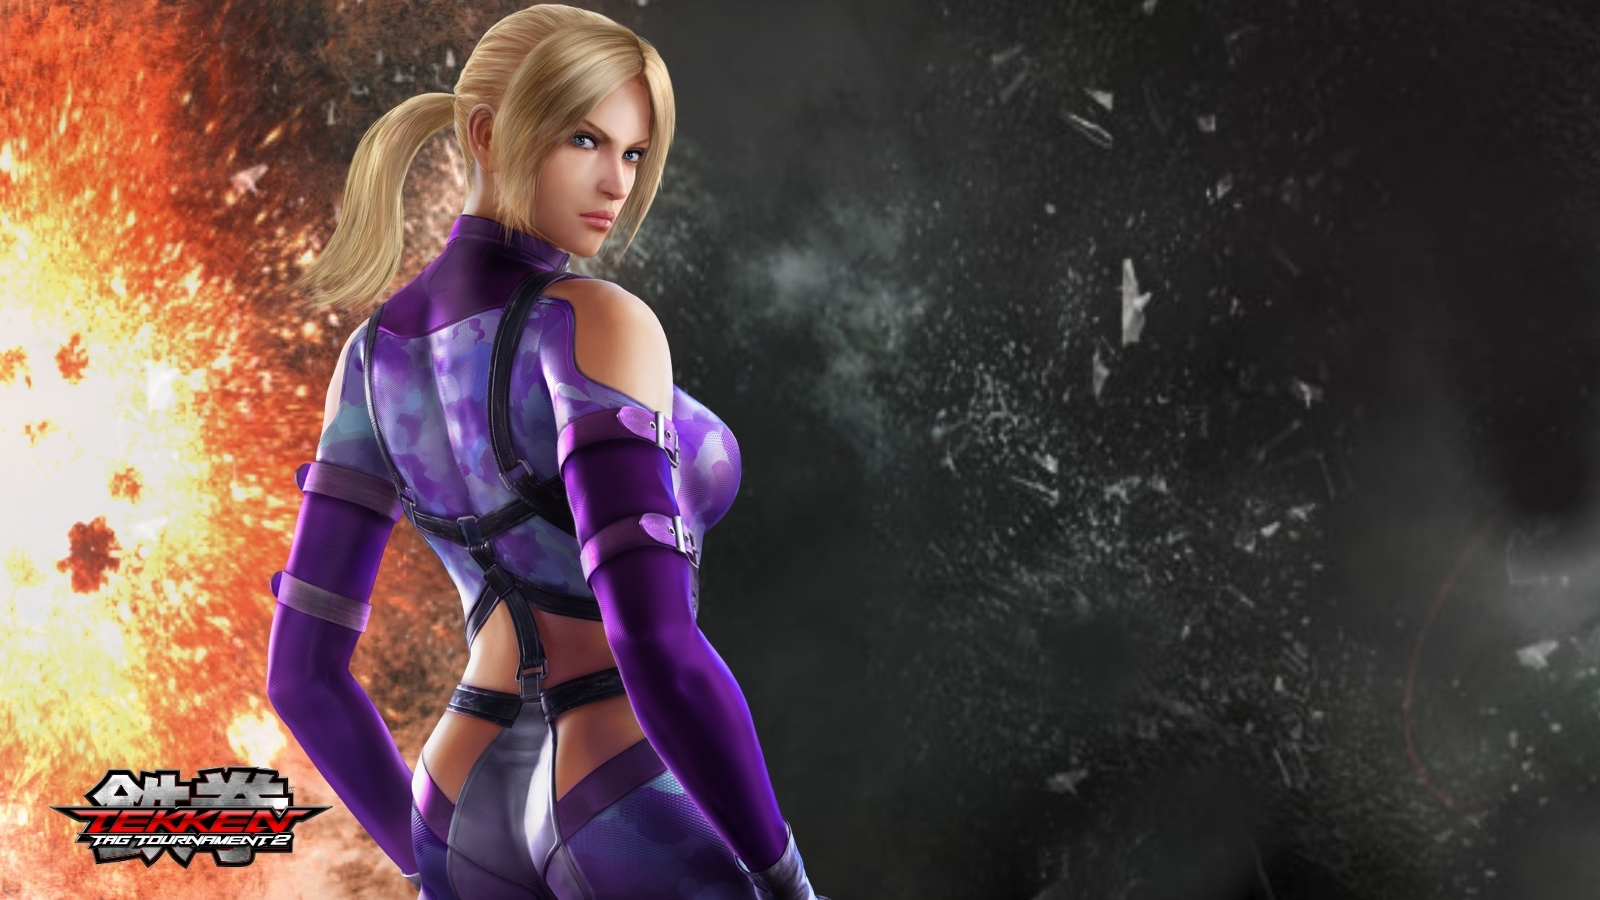 http://2.bp.blogspot.com/-3QYv8VBjaYM/UGswFXcvEvI/AAAAAAAARHM/TIEj-fUoSpg/s1600/Nina_Williams_Tekken_Tag_Tournament_2_Wallpaper.jpg